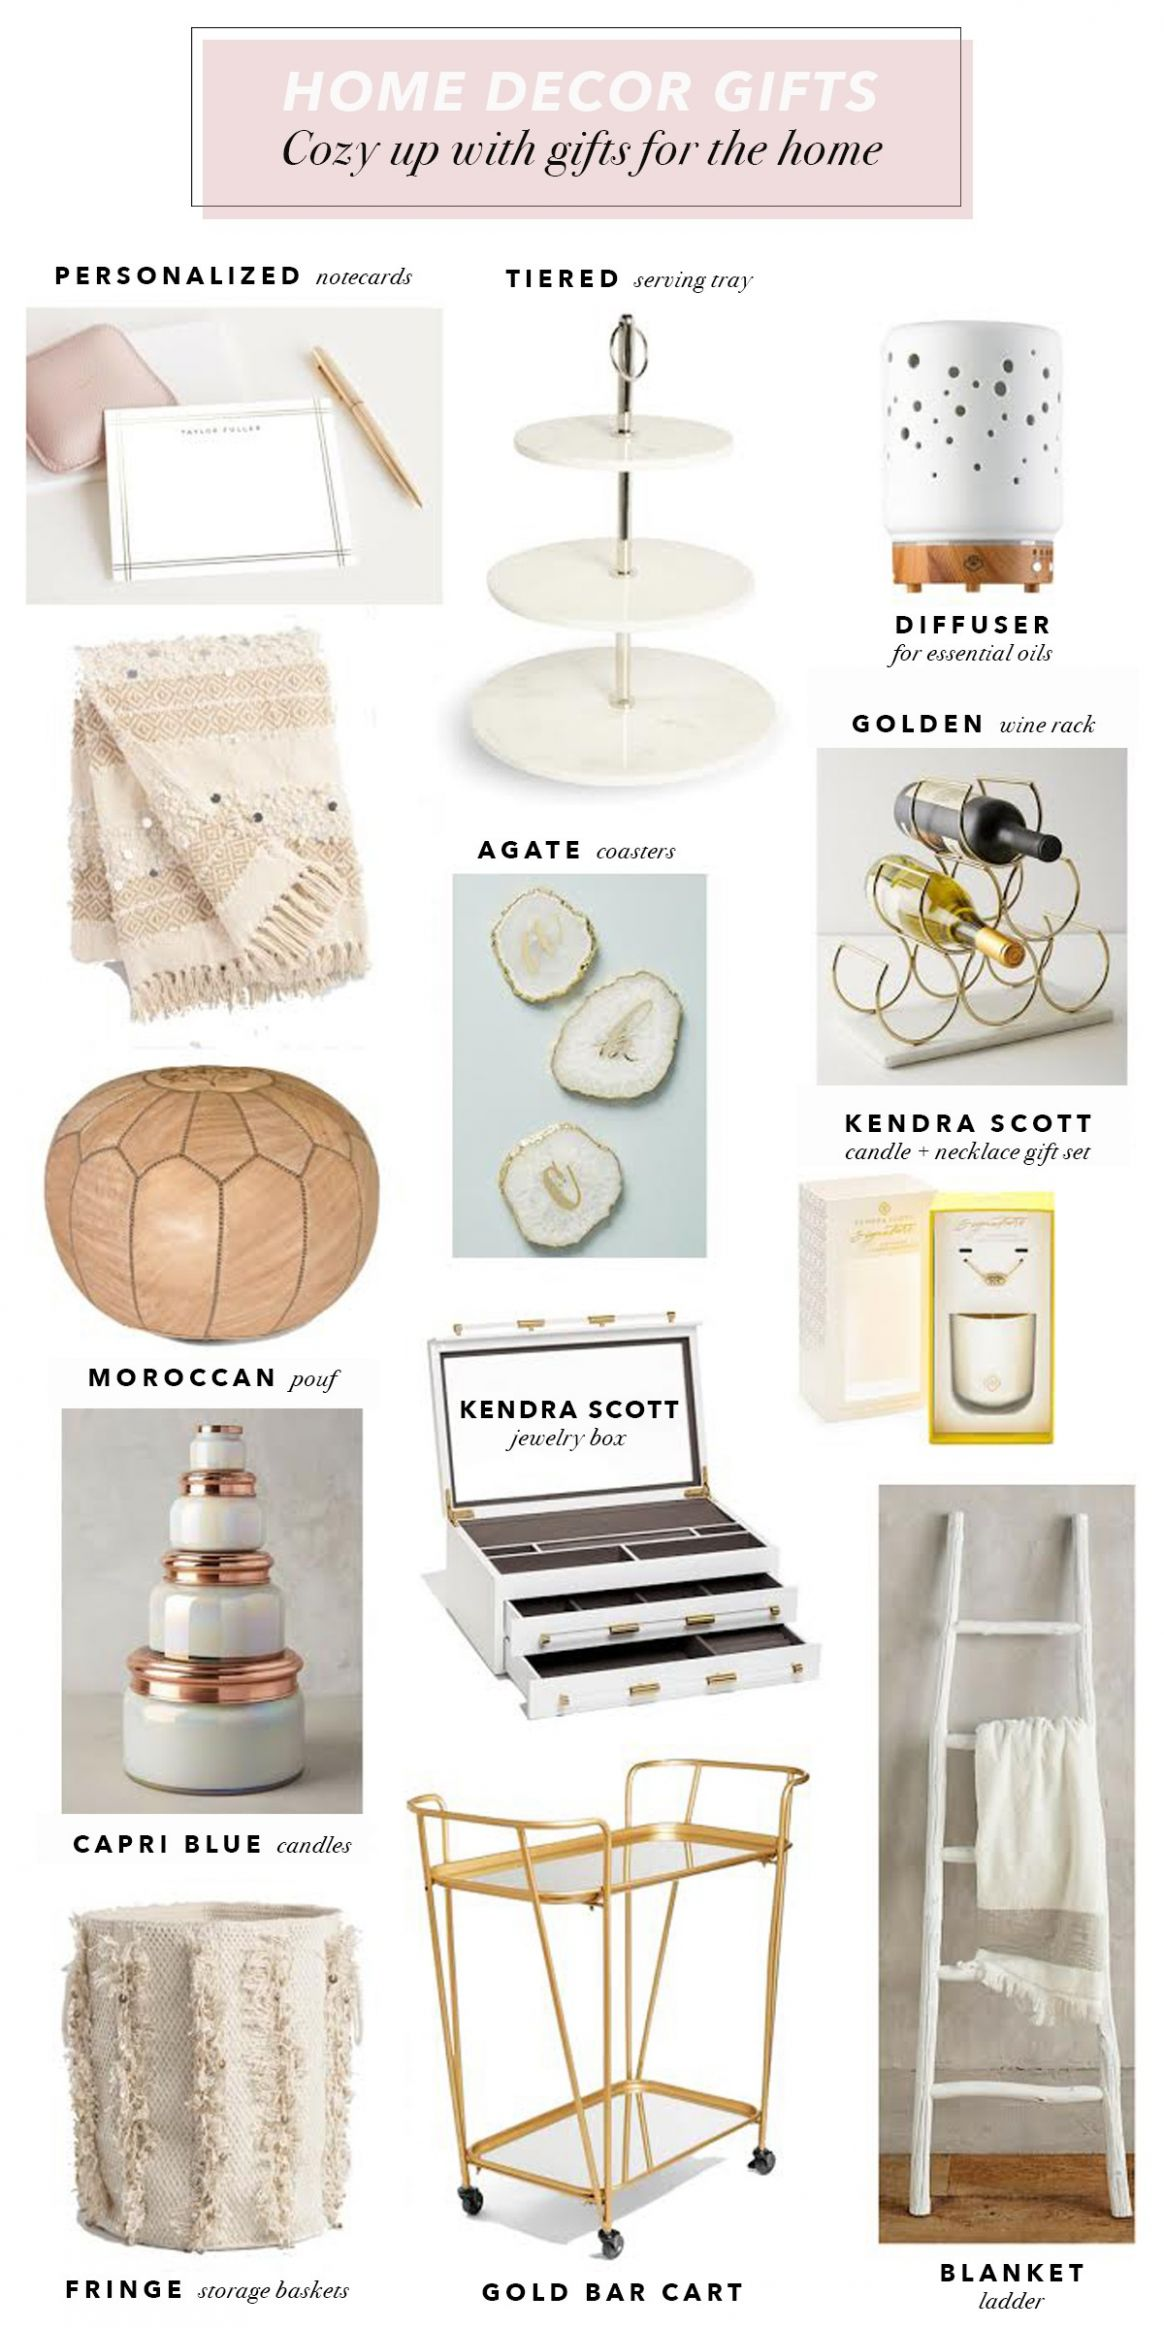 Holiday Home Decor Gift Ideas | The Lovely Gift Guide - home decor gifts